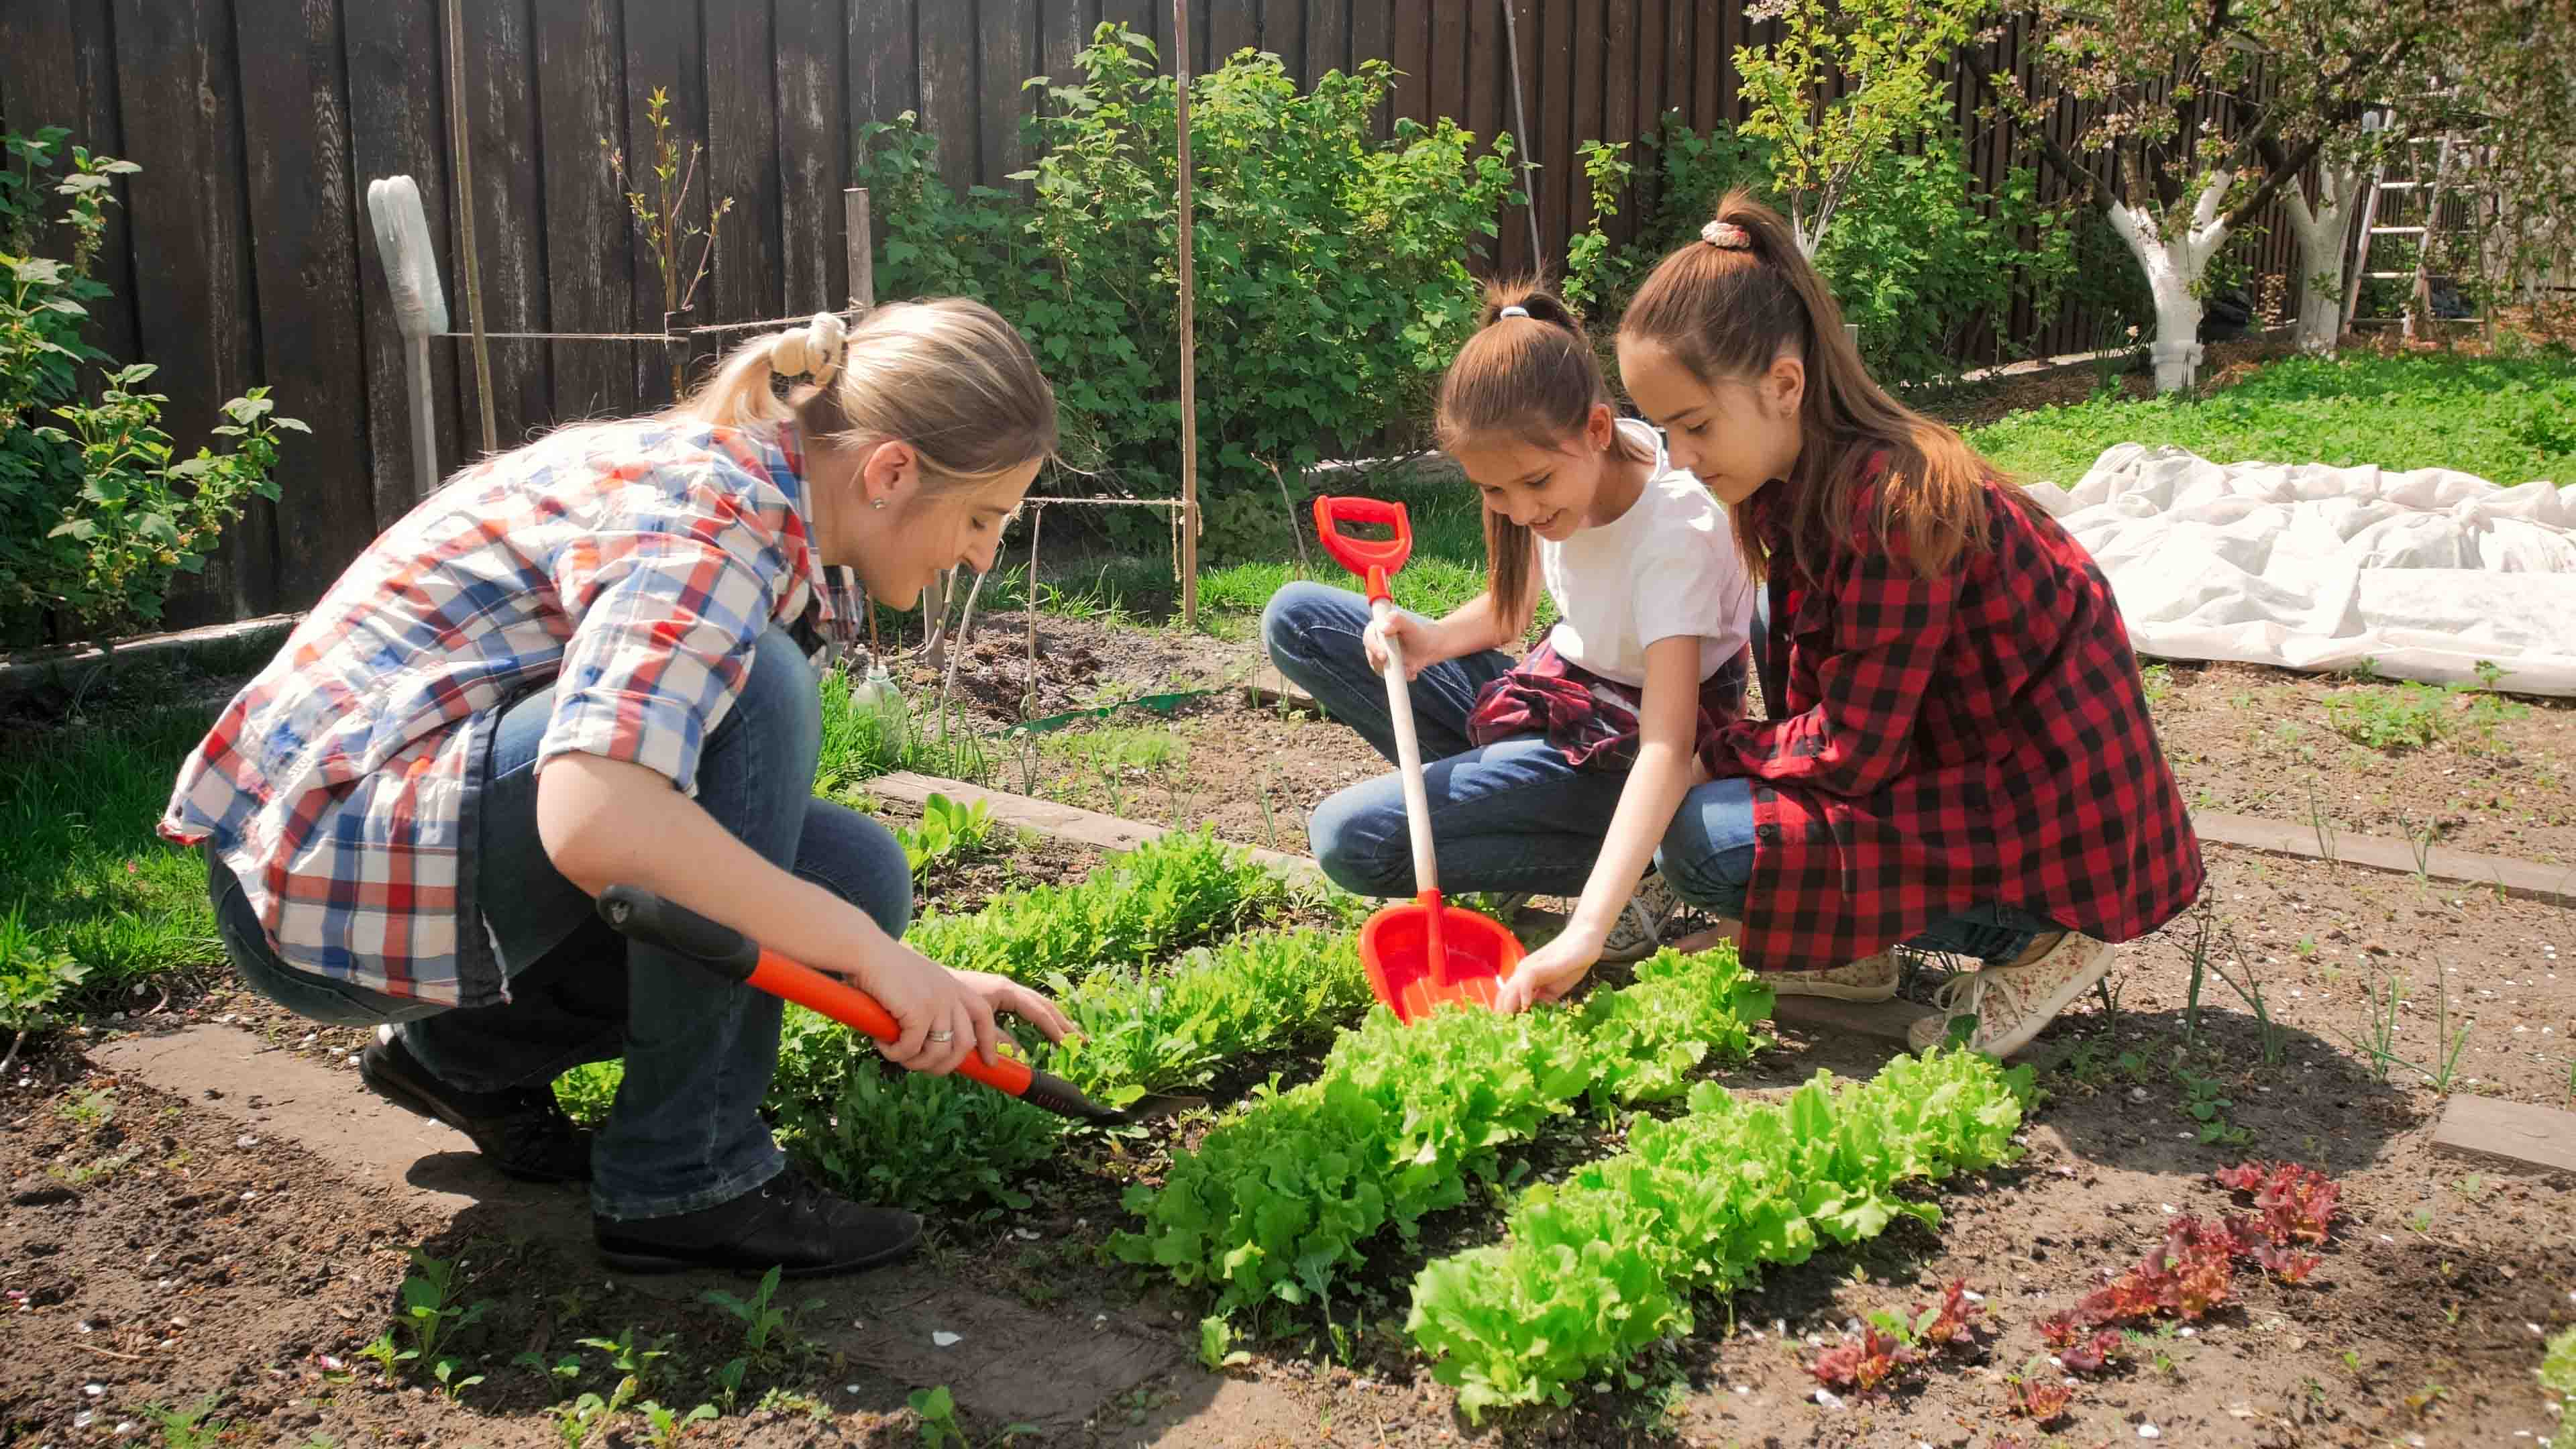 Kids helping their mother with gardening outside